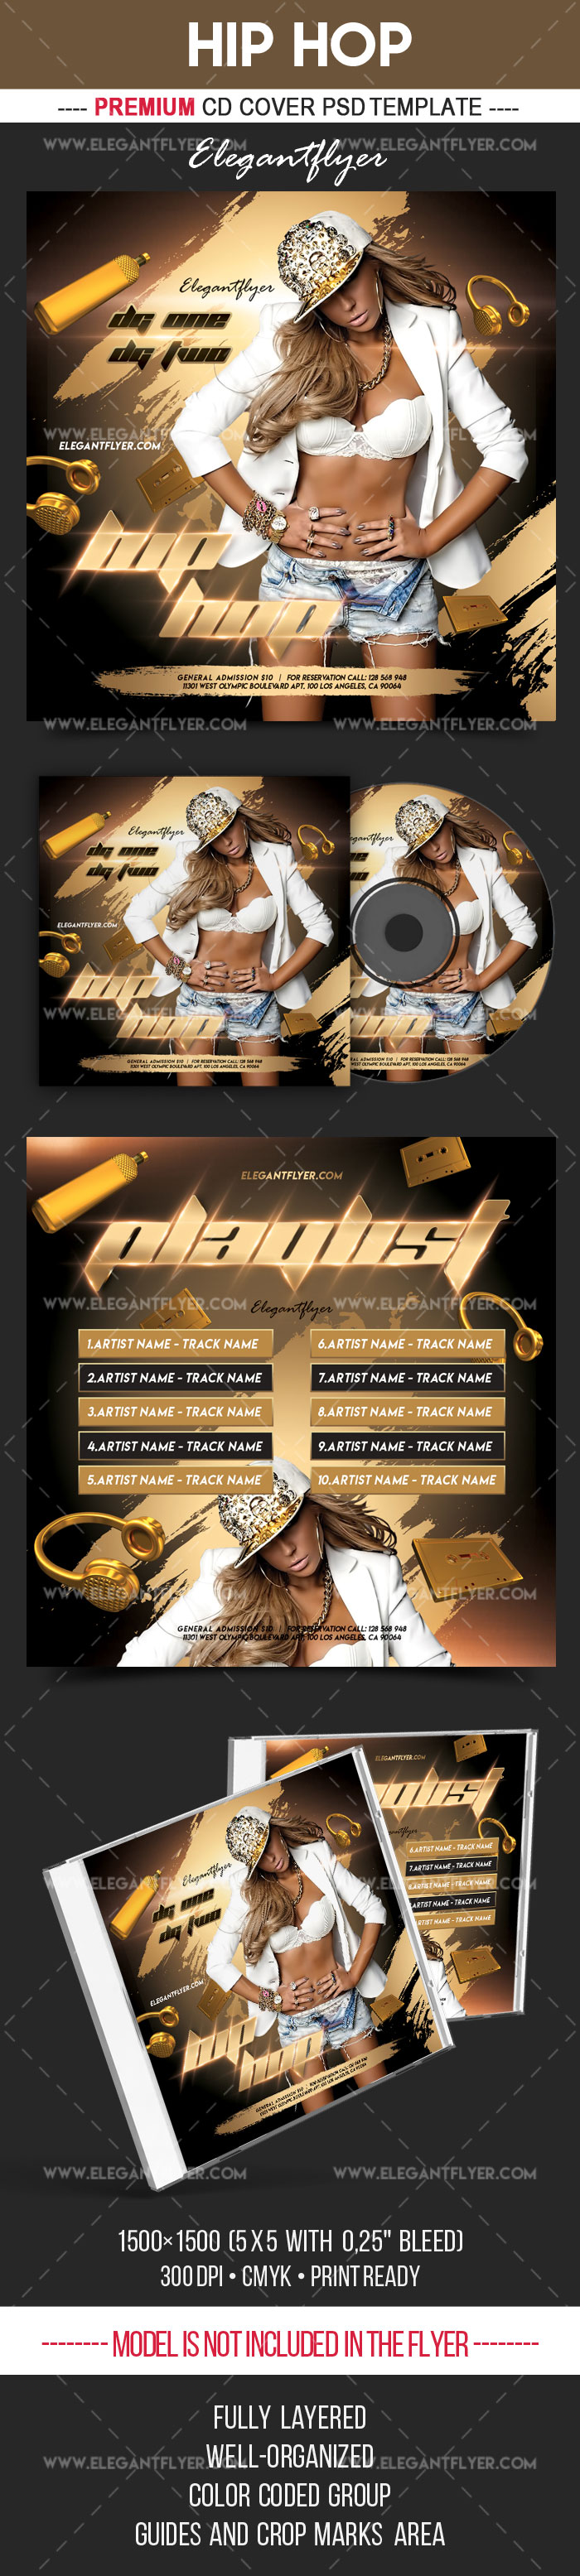 Hip Hop – Premium CD Cover PSD Template